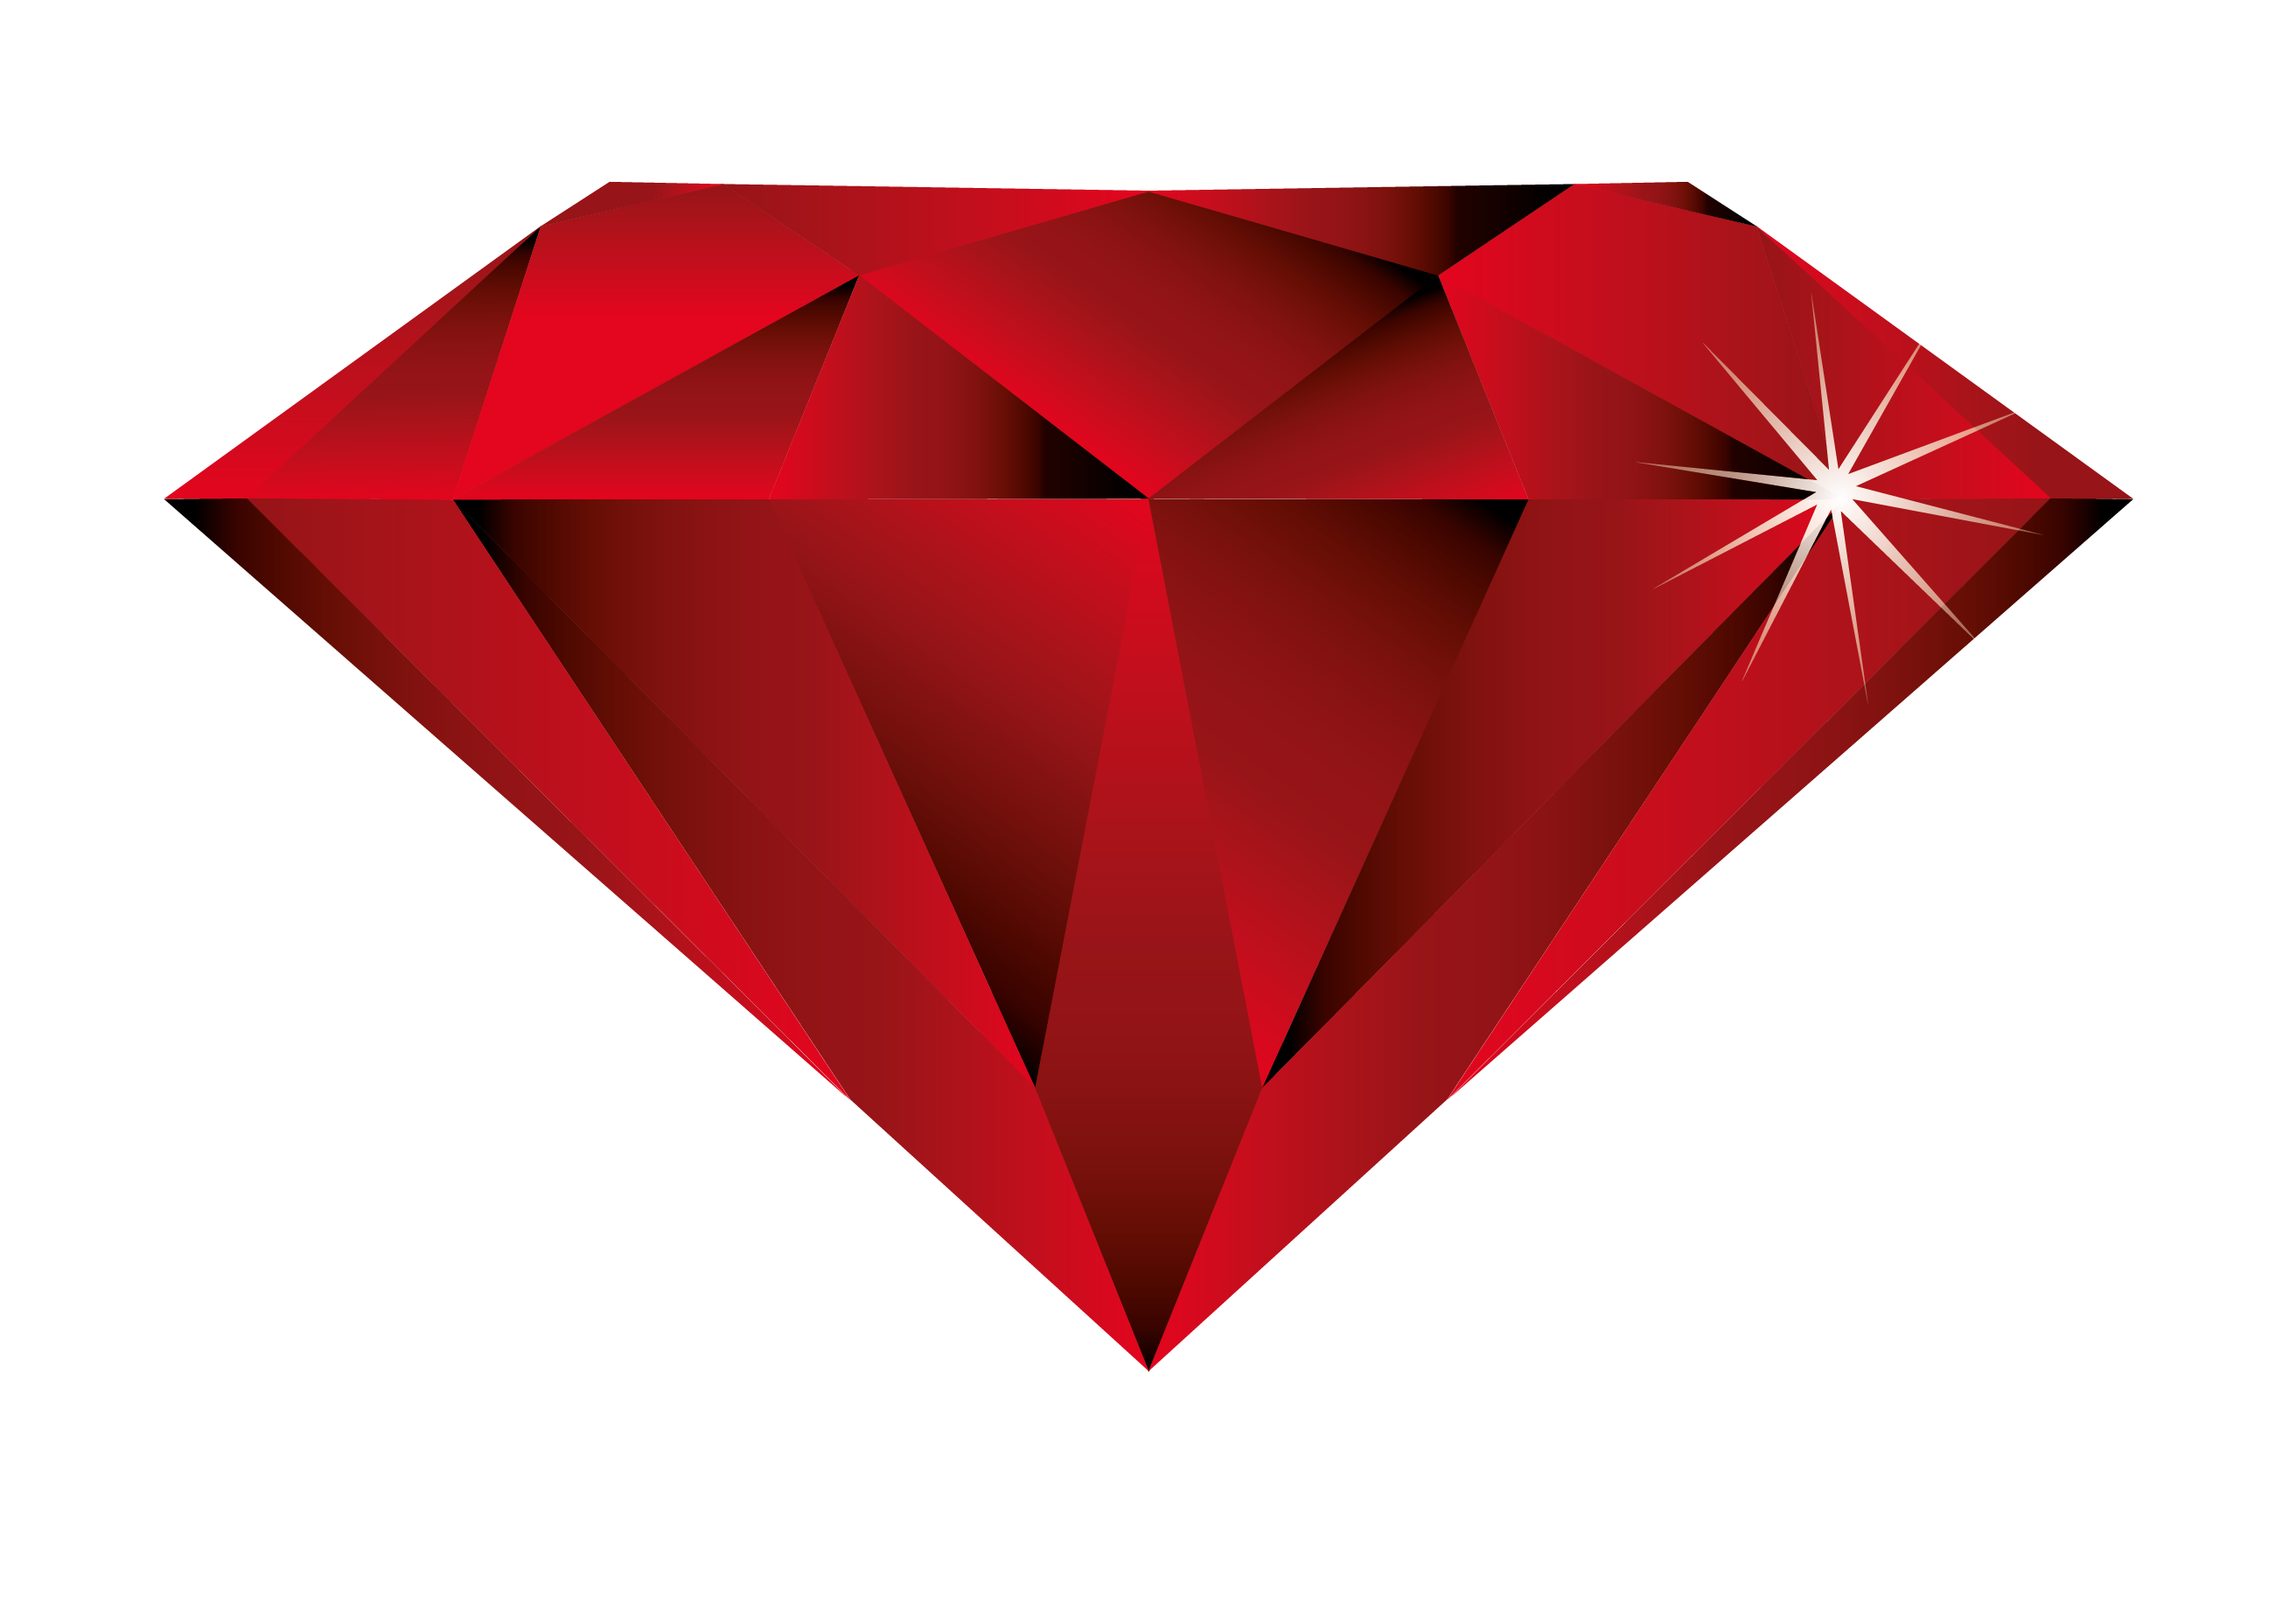 Diamond clipart red diamond. Png ink il tuo